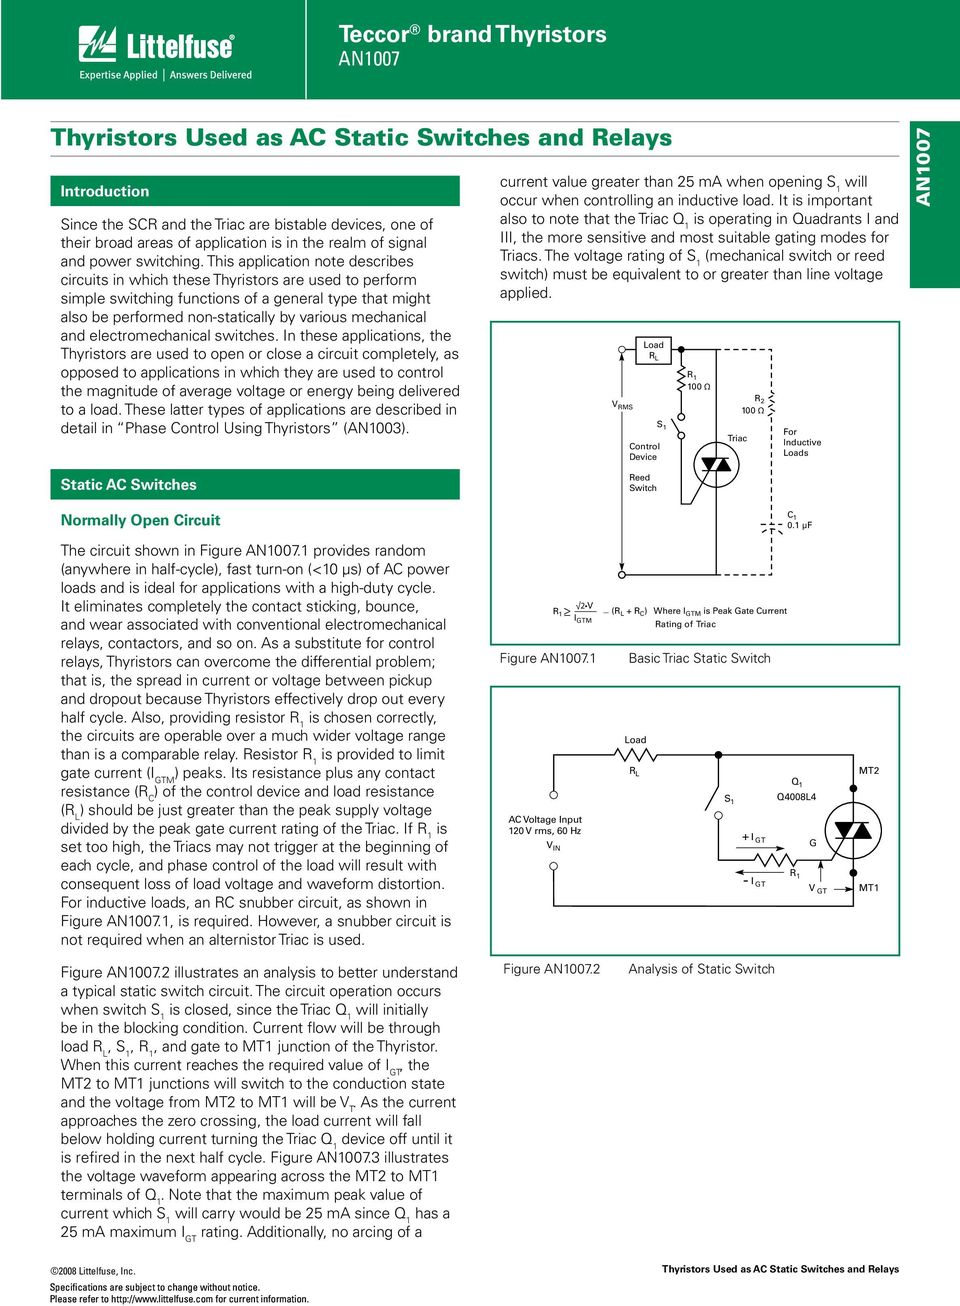 Teccor Brand Thyristors An Pdf Triac Applications And Electromechanical Switches